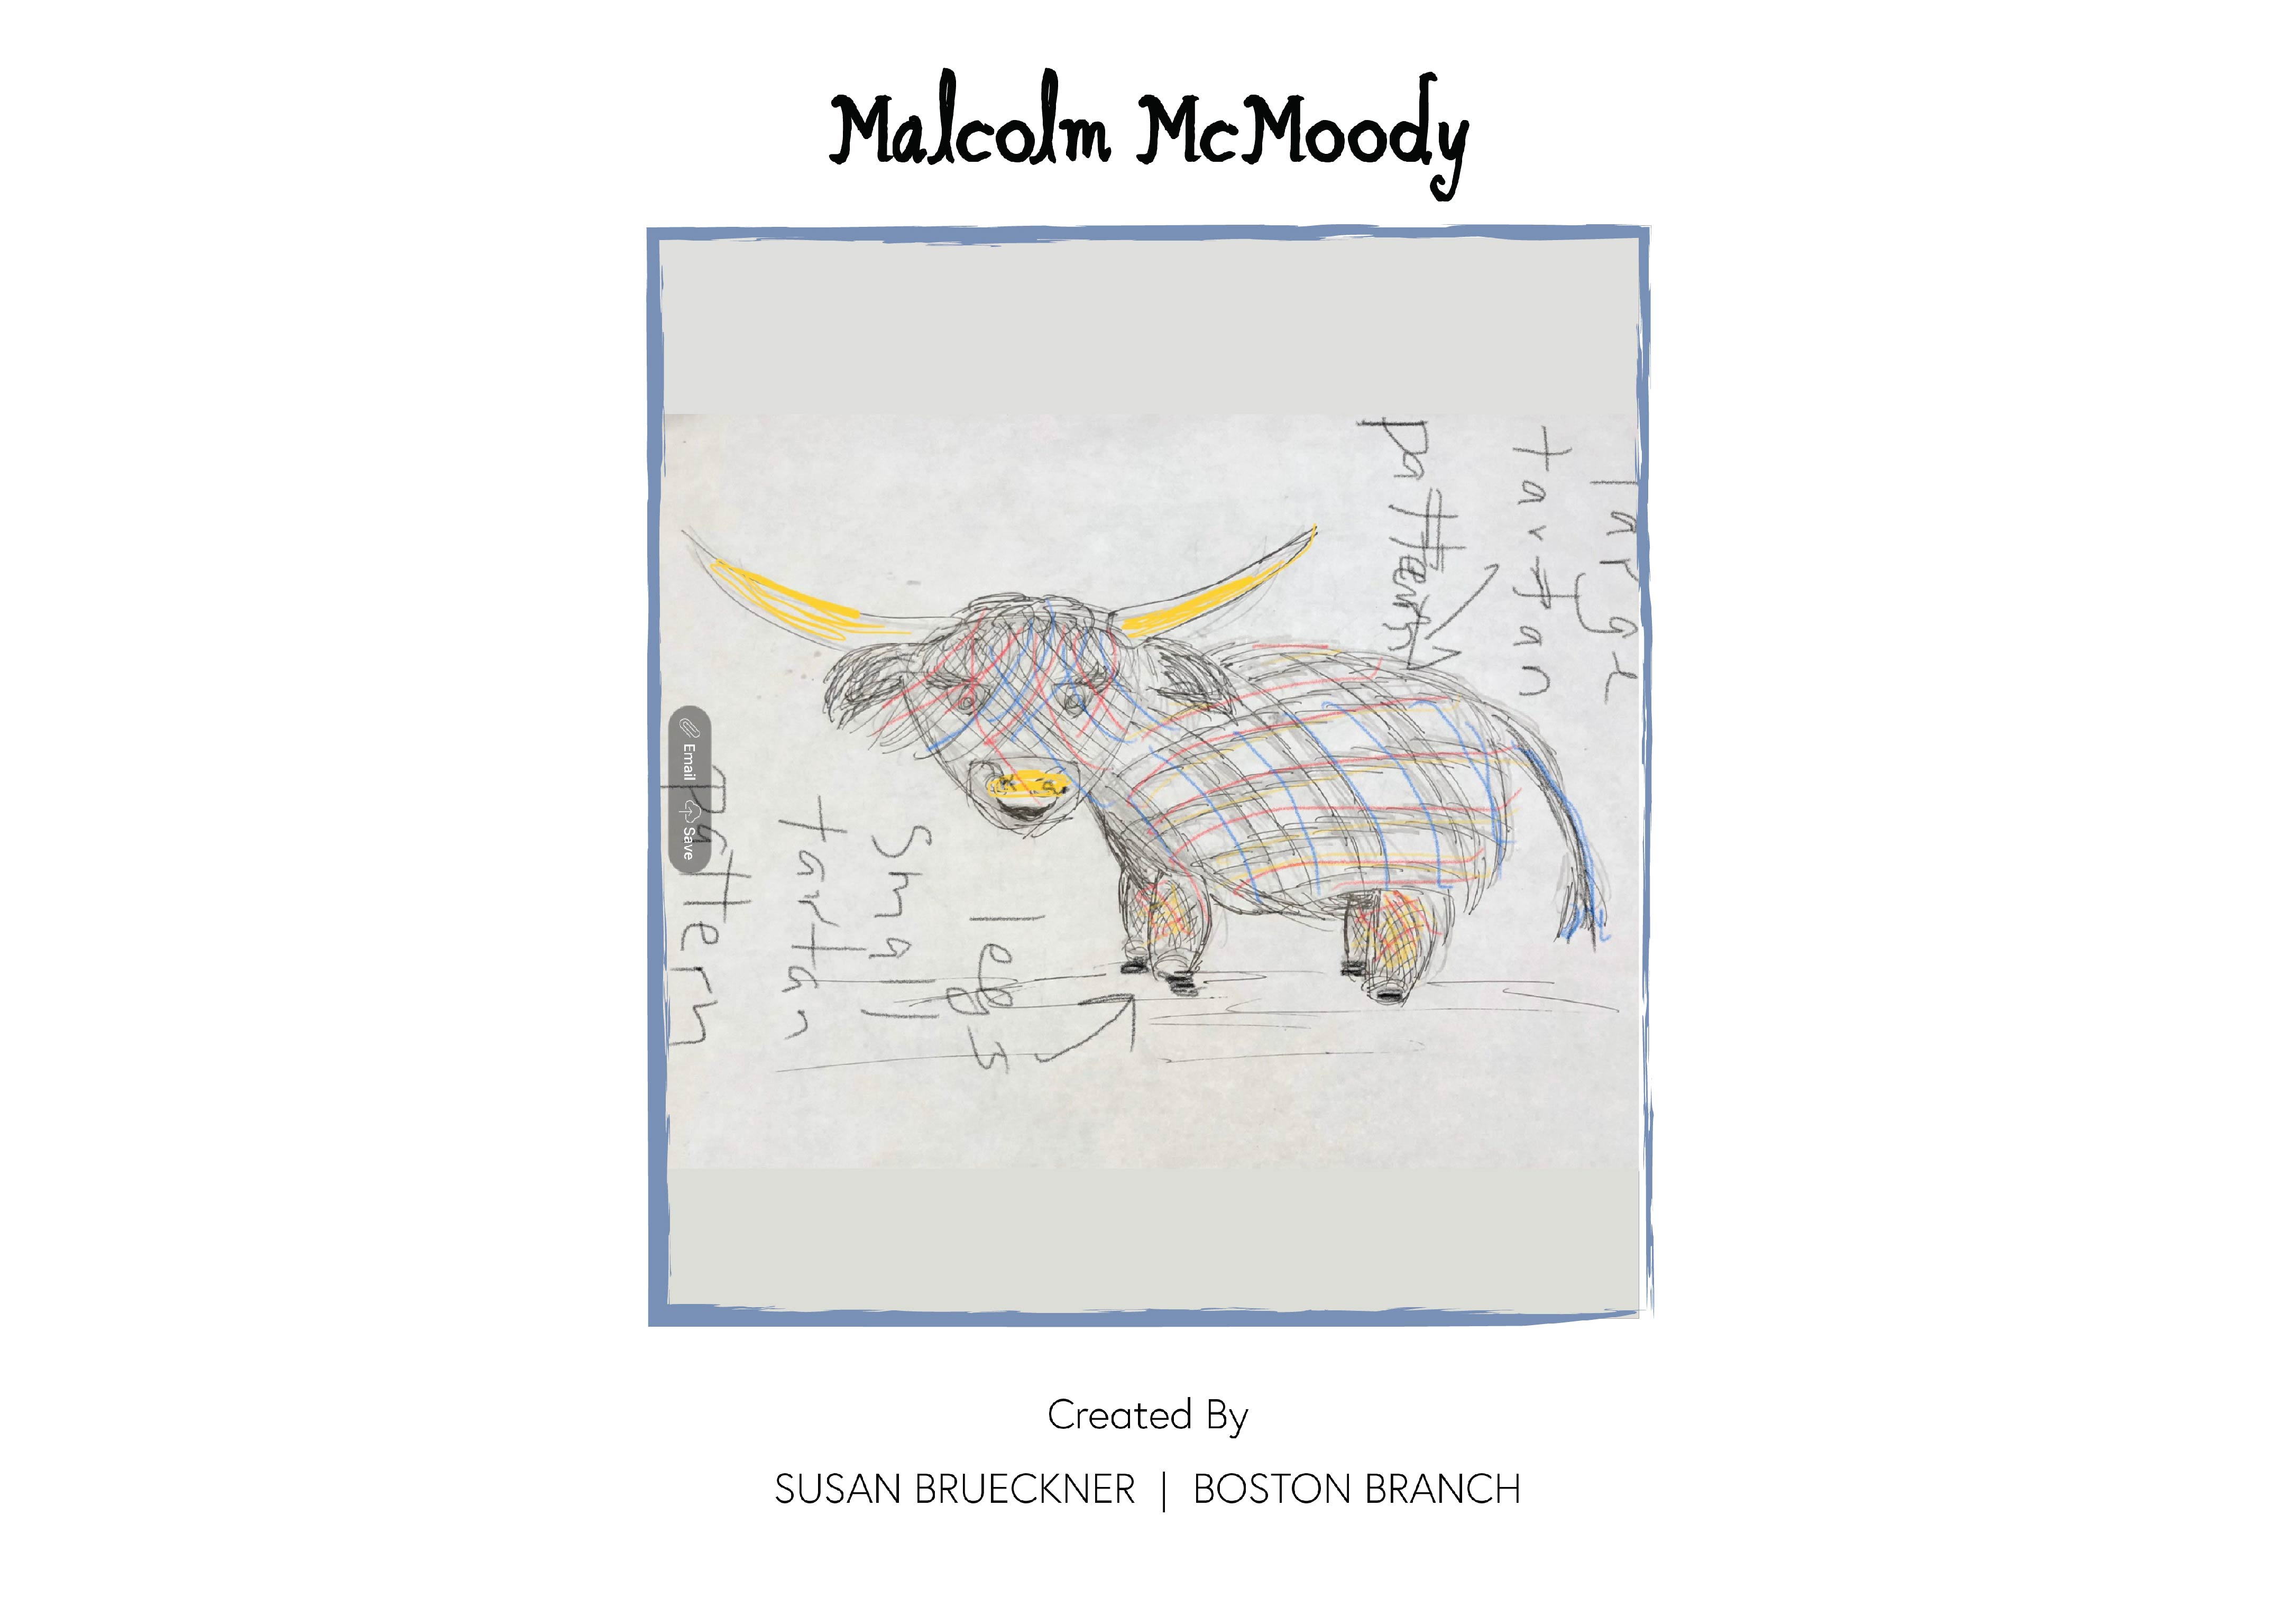 Malcolm McMoody